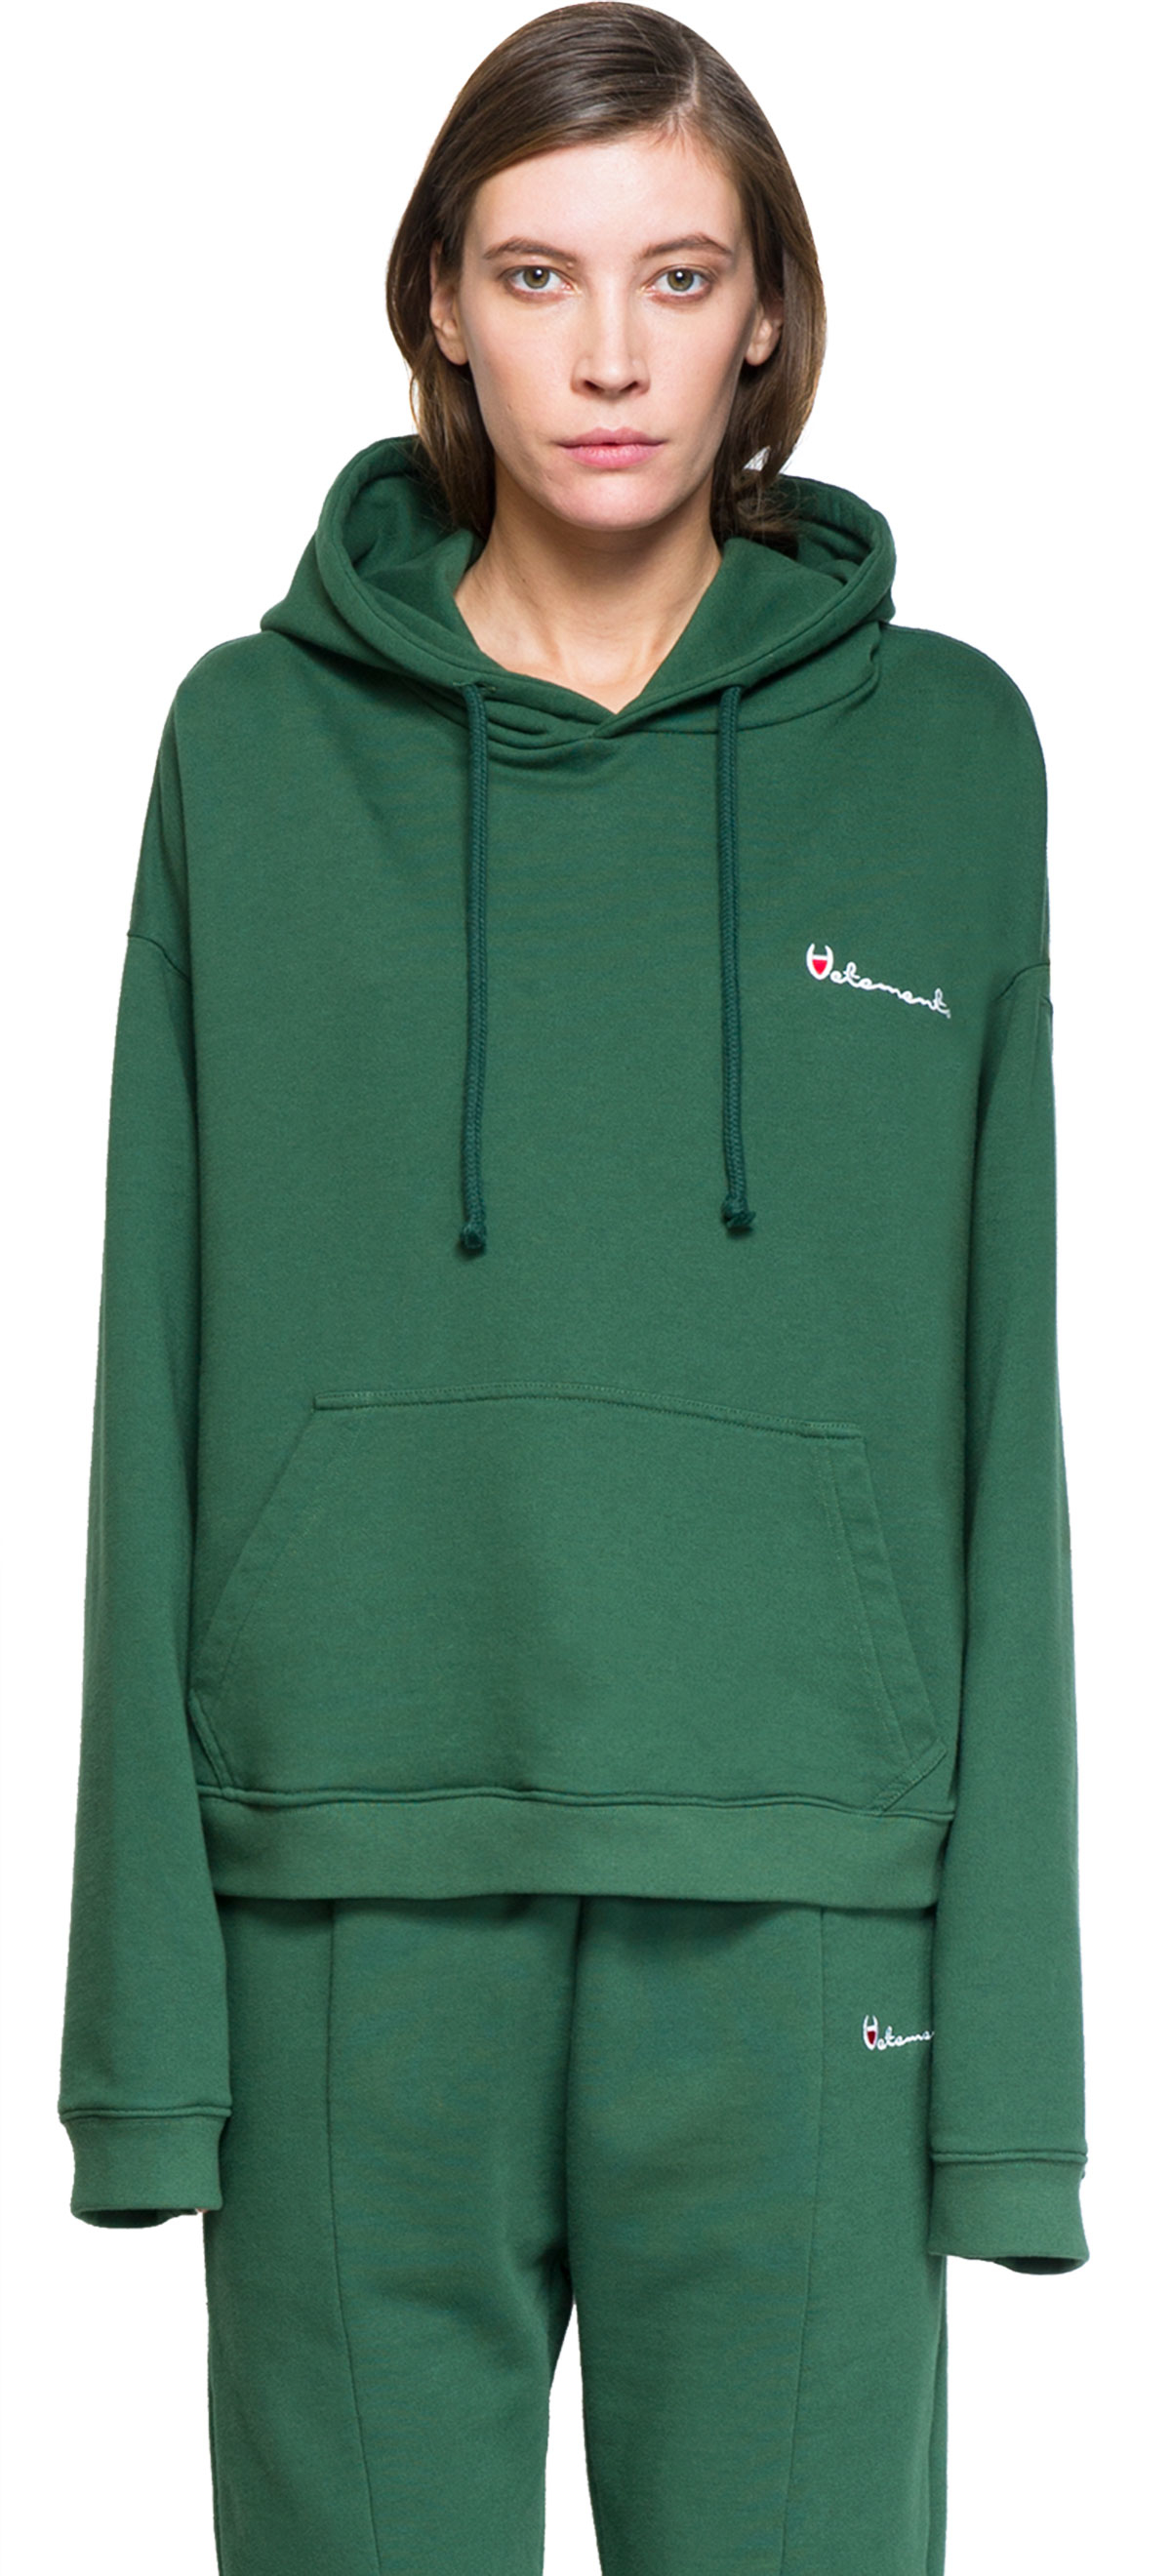 Vetements Hooded Sweatshirt in Green | Lyst